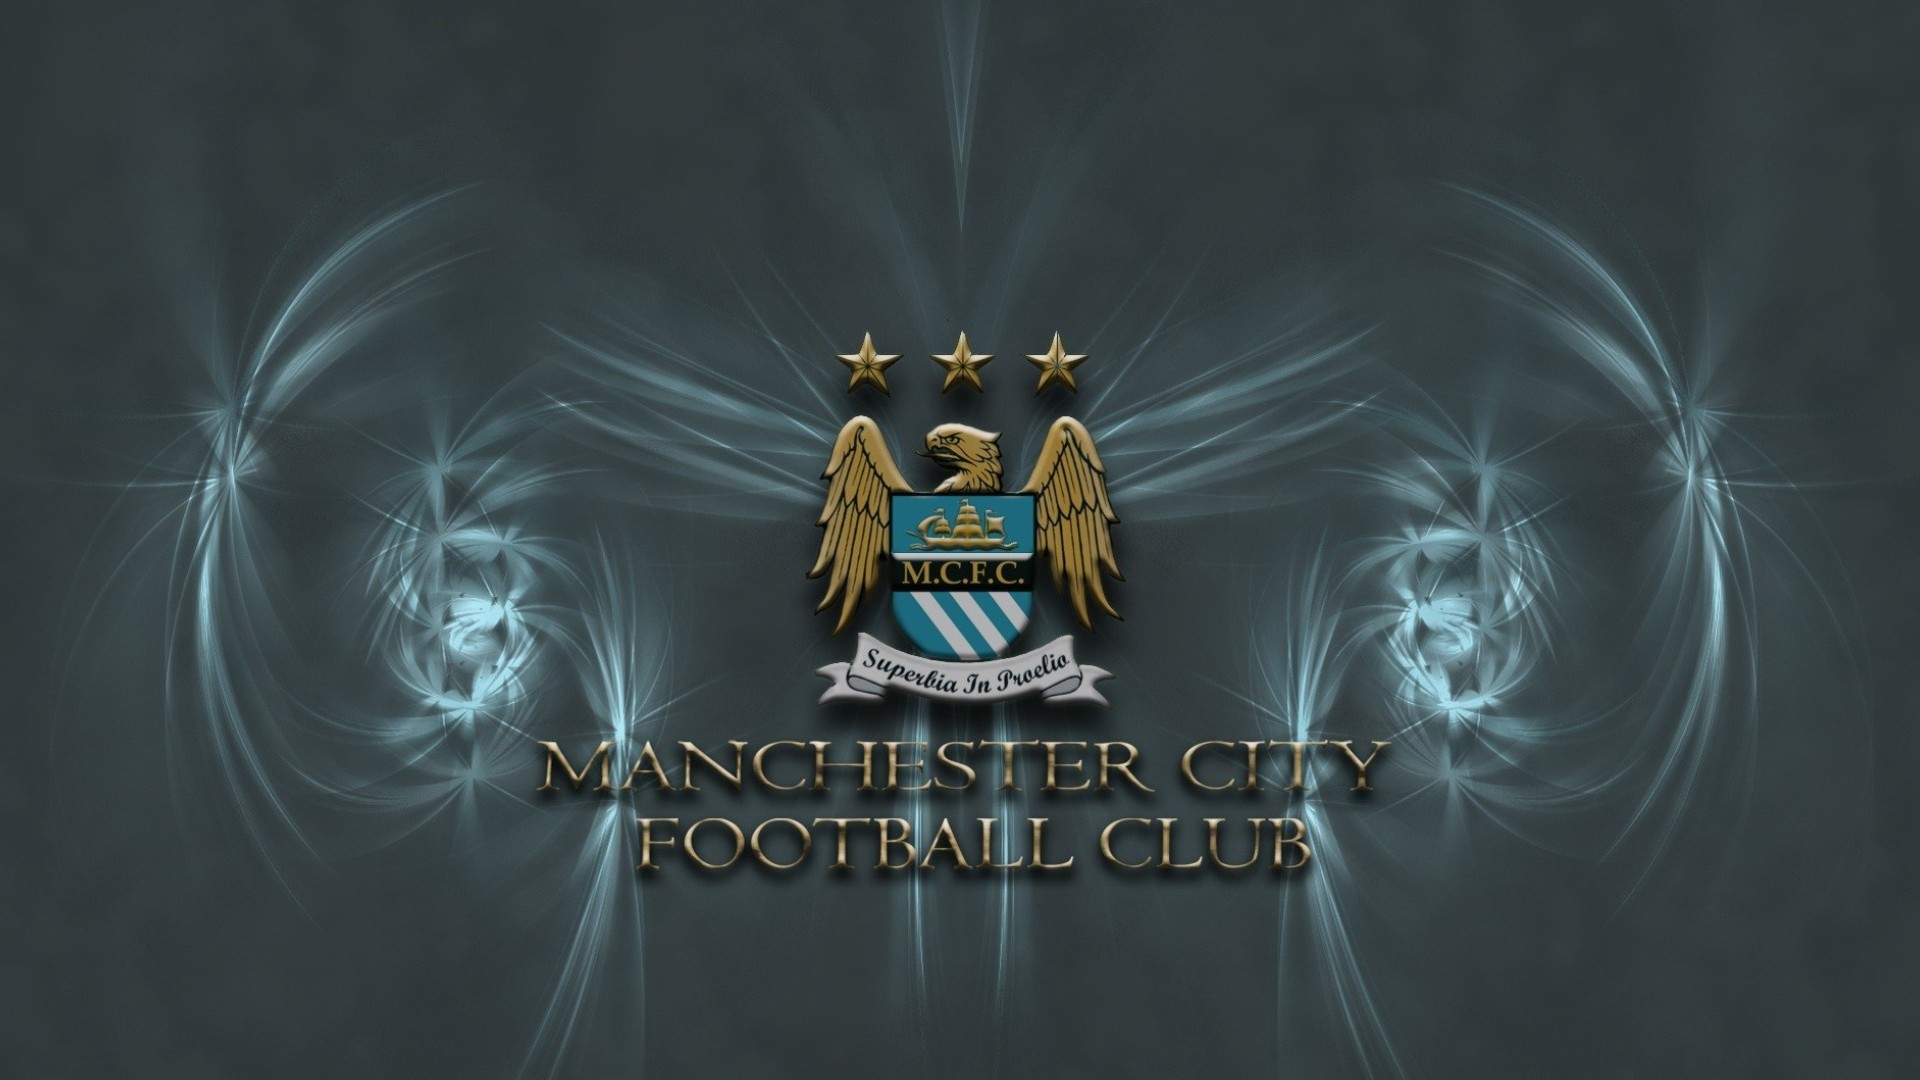 Manchester City Iphone Wallpaper Manchester City F C Full Hd Wallpaper And Background